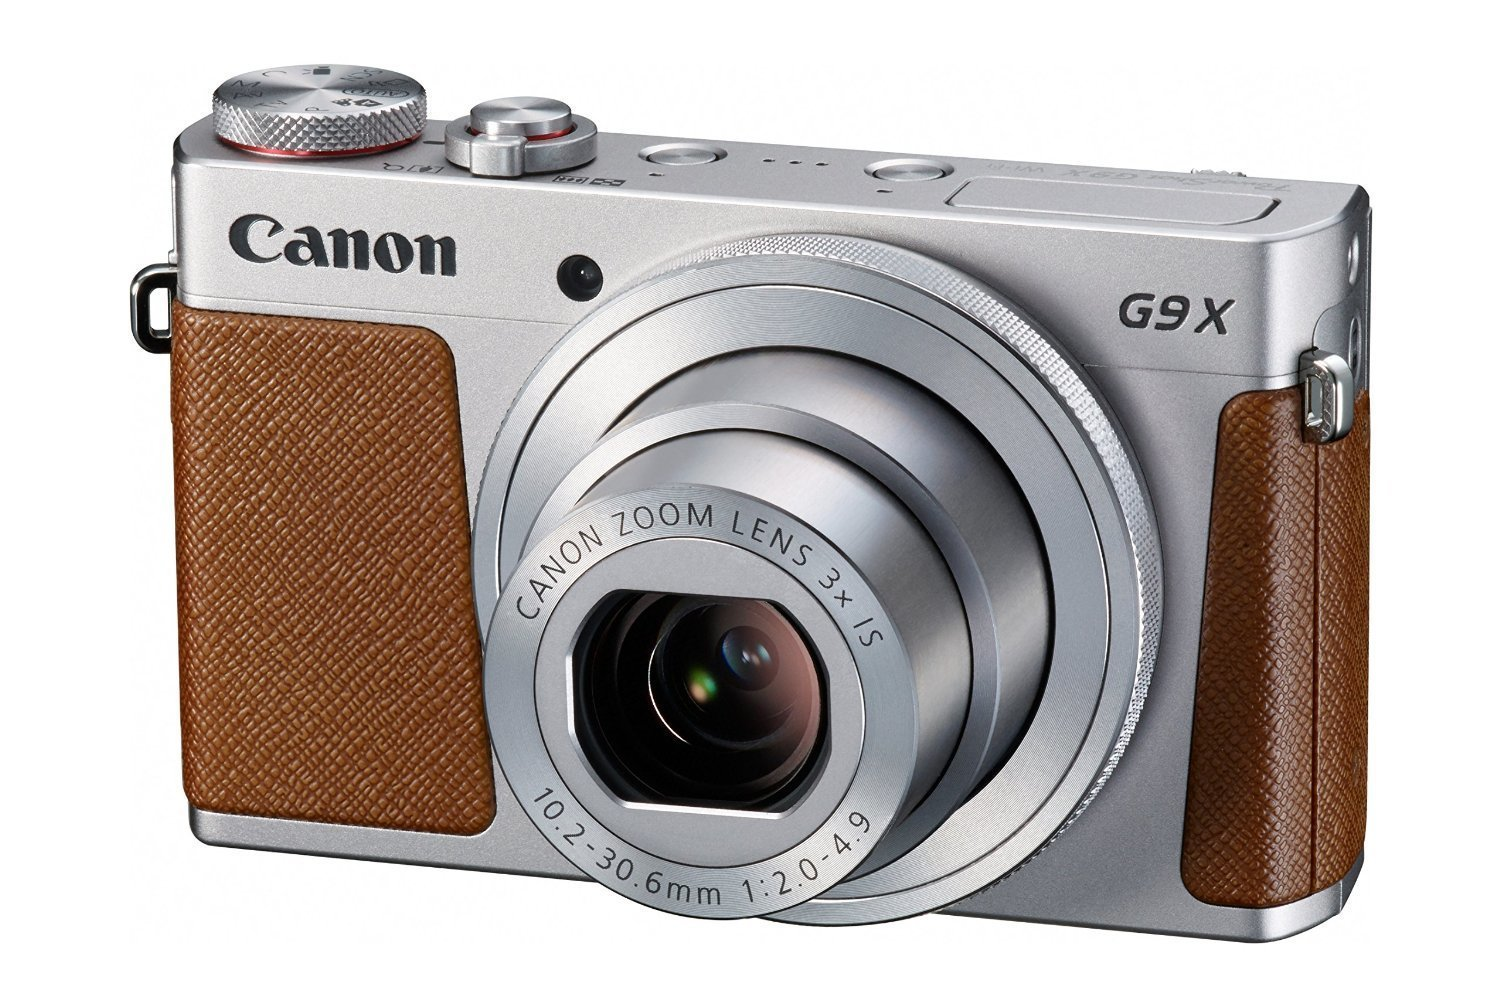 Canon PowerShot G9 X  Photo 4 of 10 in The best cameras of 2016